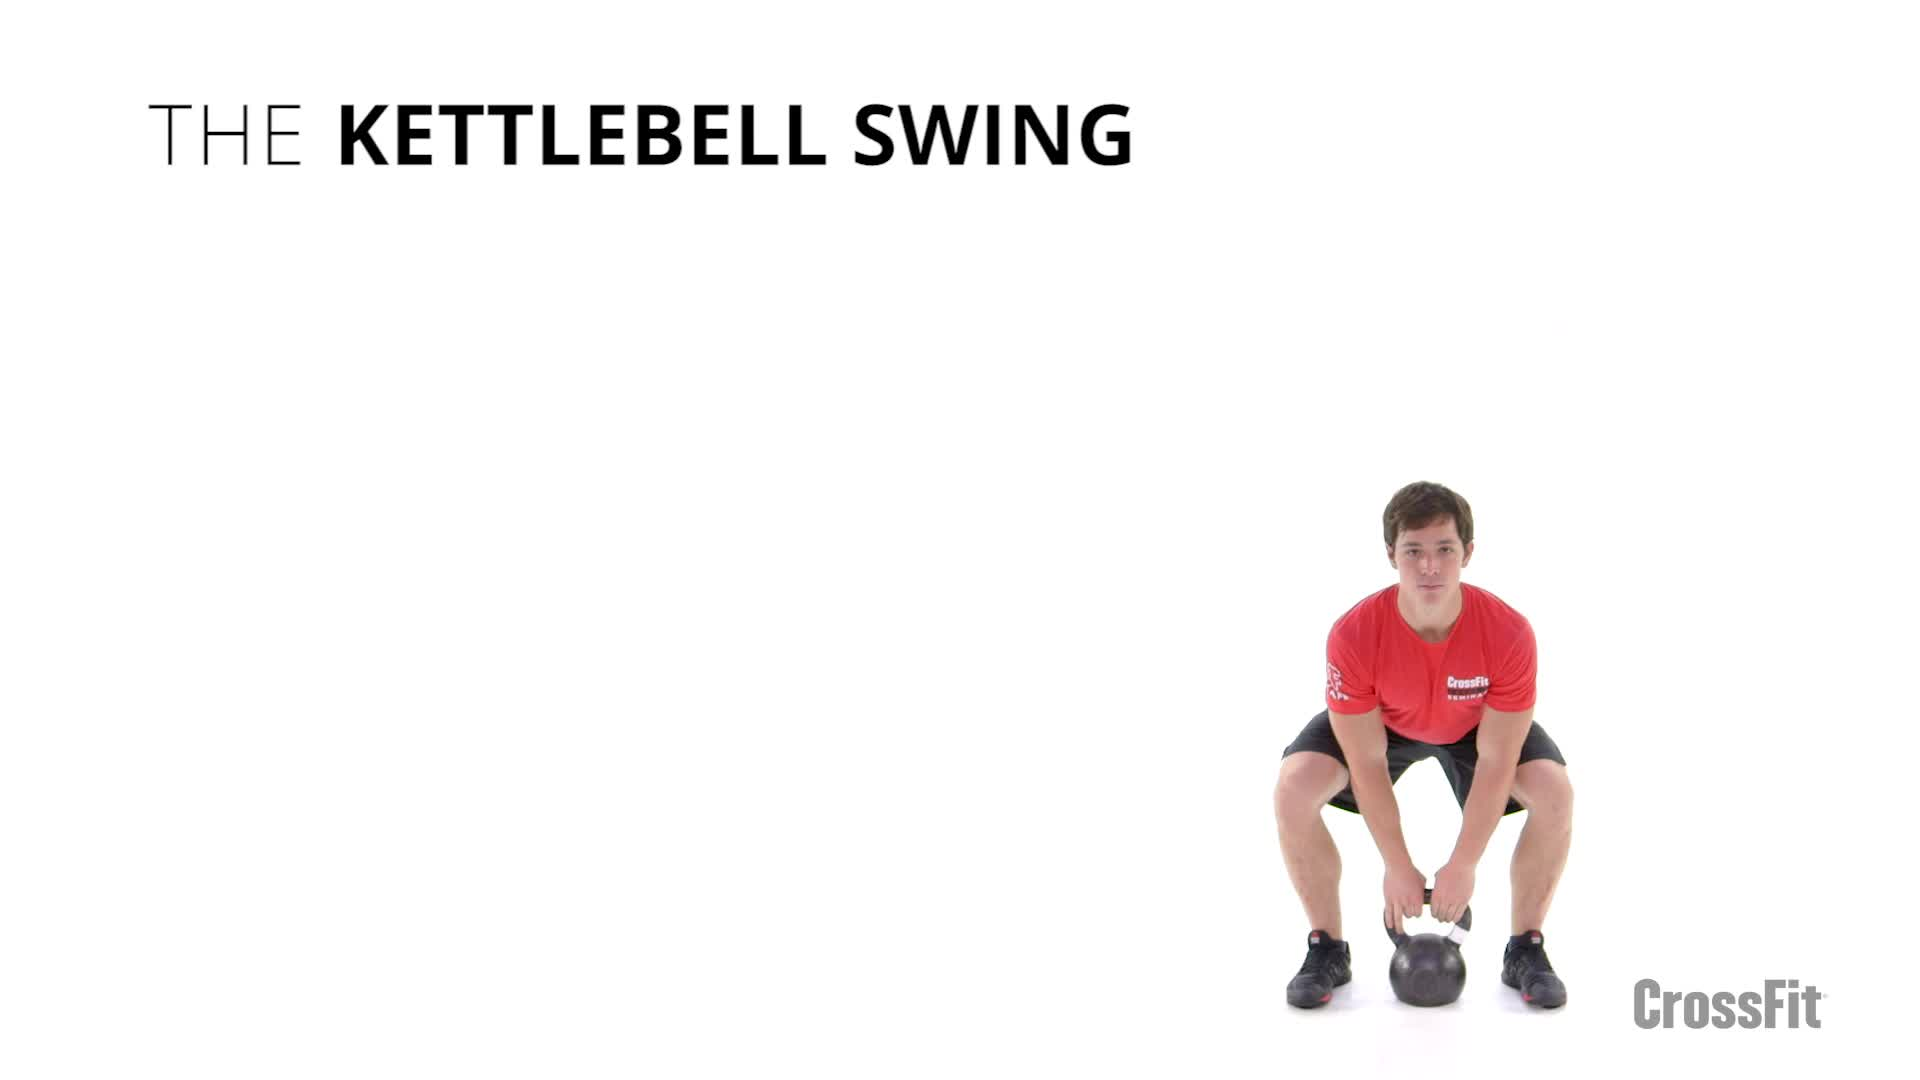 The Kettlebell Swing GIFs